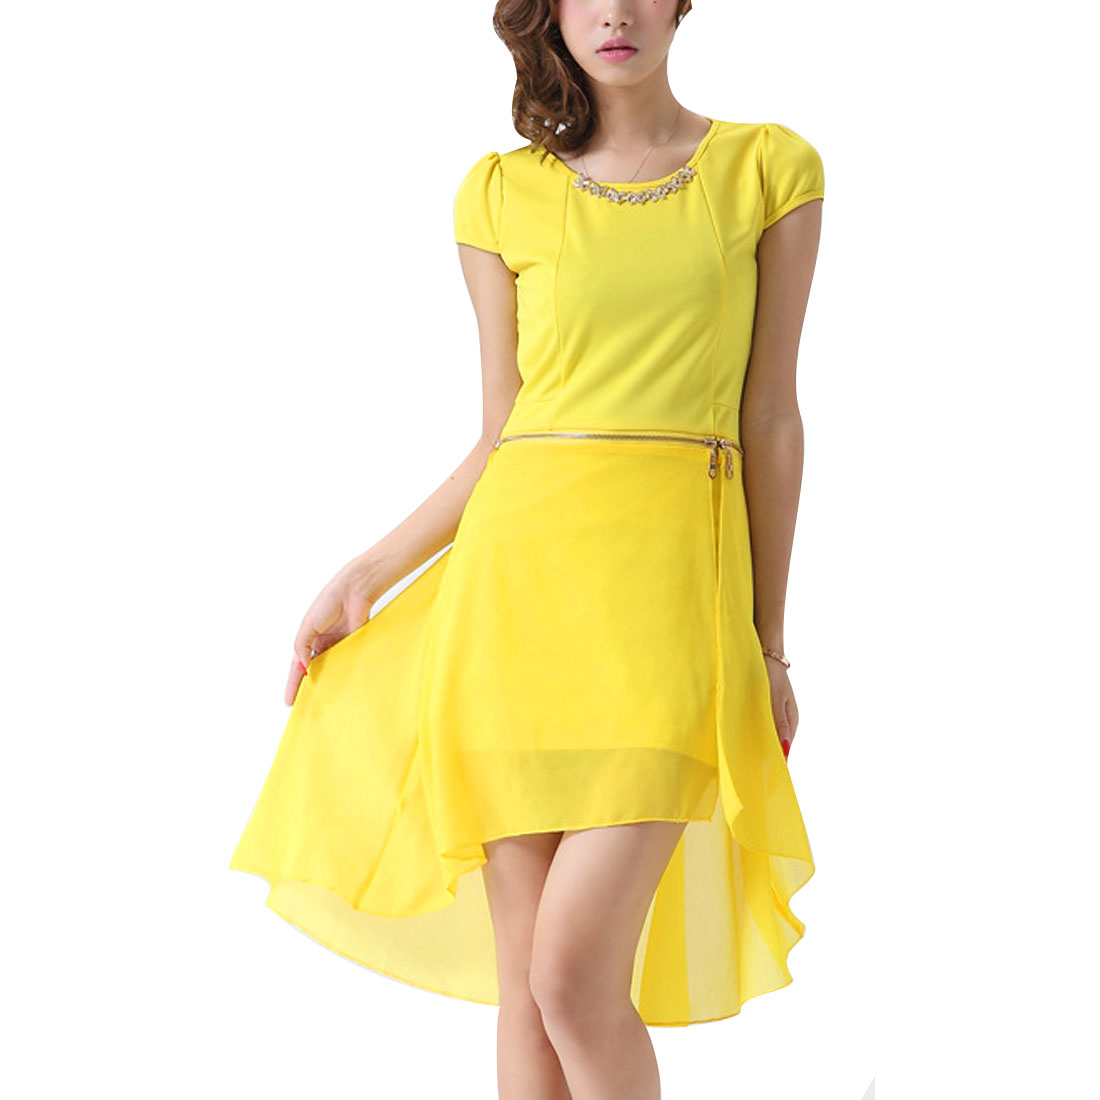 Round Neck Cap Sleeve Irregular Hem Yellow Mini Dress for Lady XS